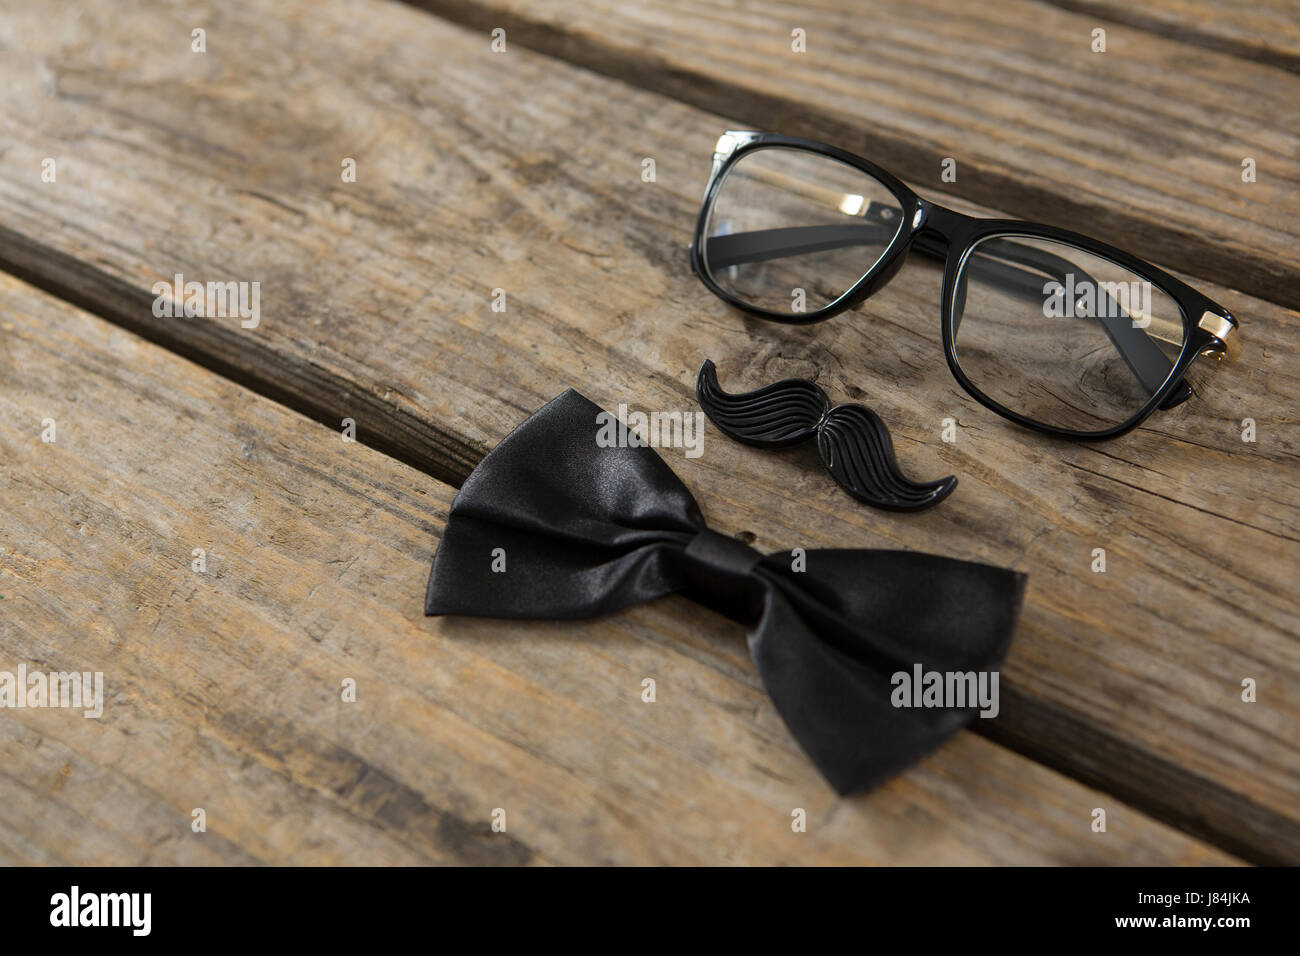 High angle view of bow tie with mustache and eyeglasses on wooden table - Stock Image